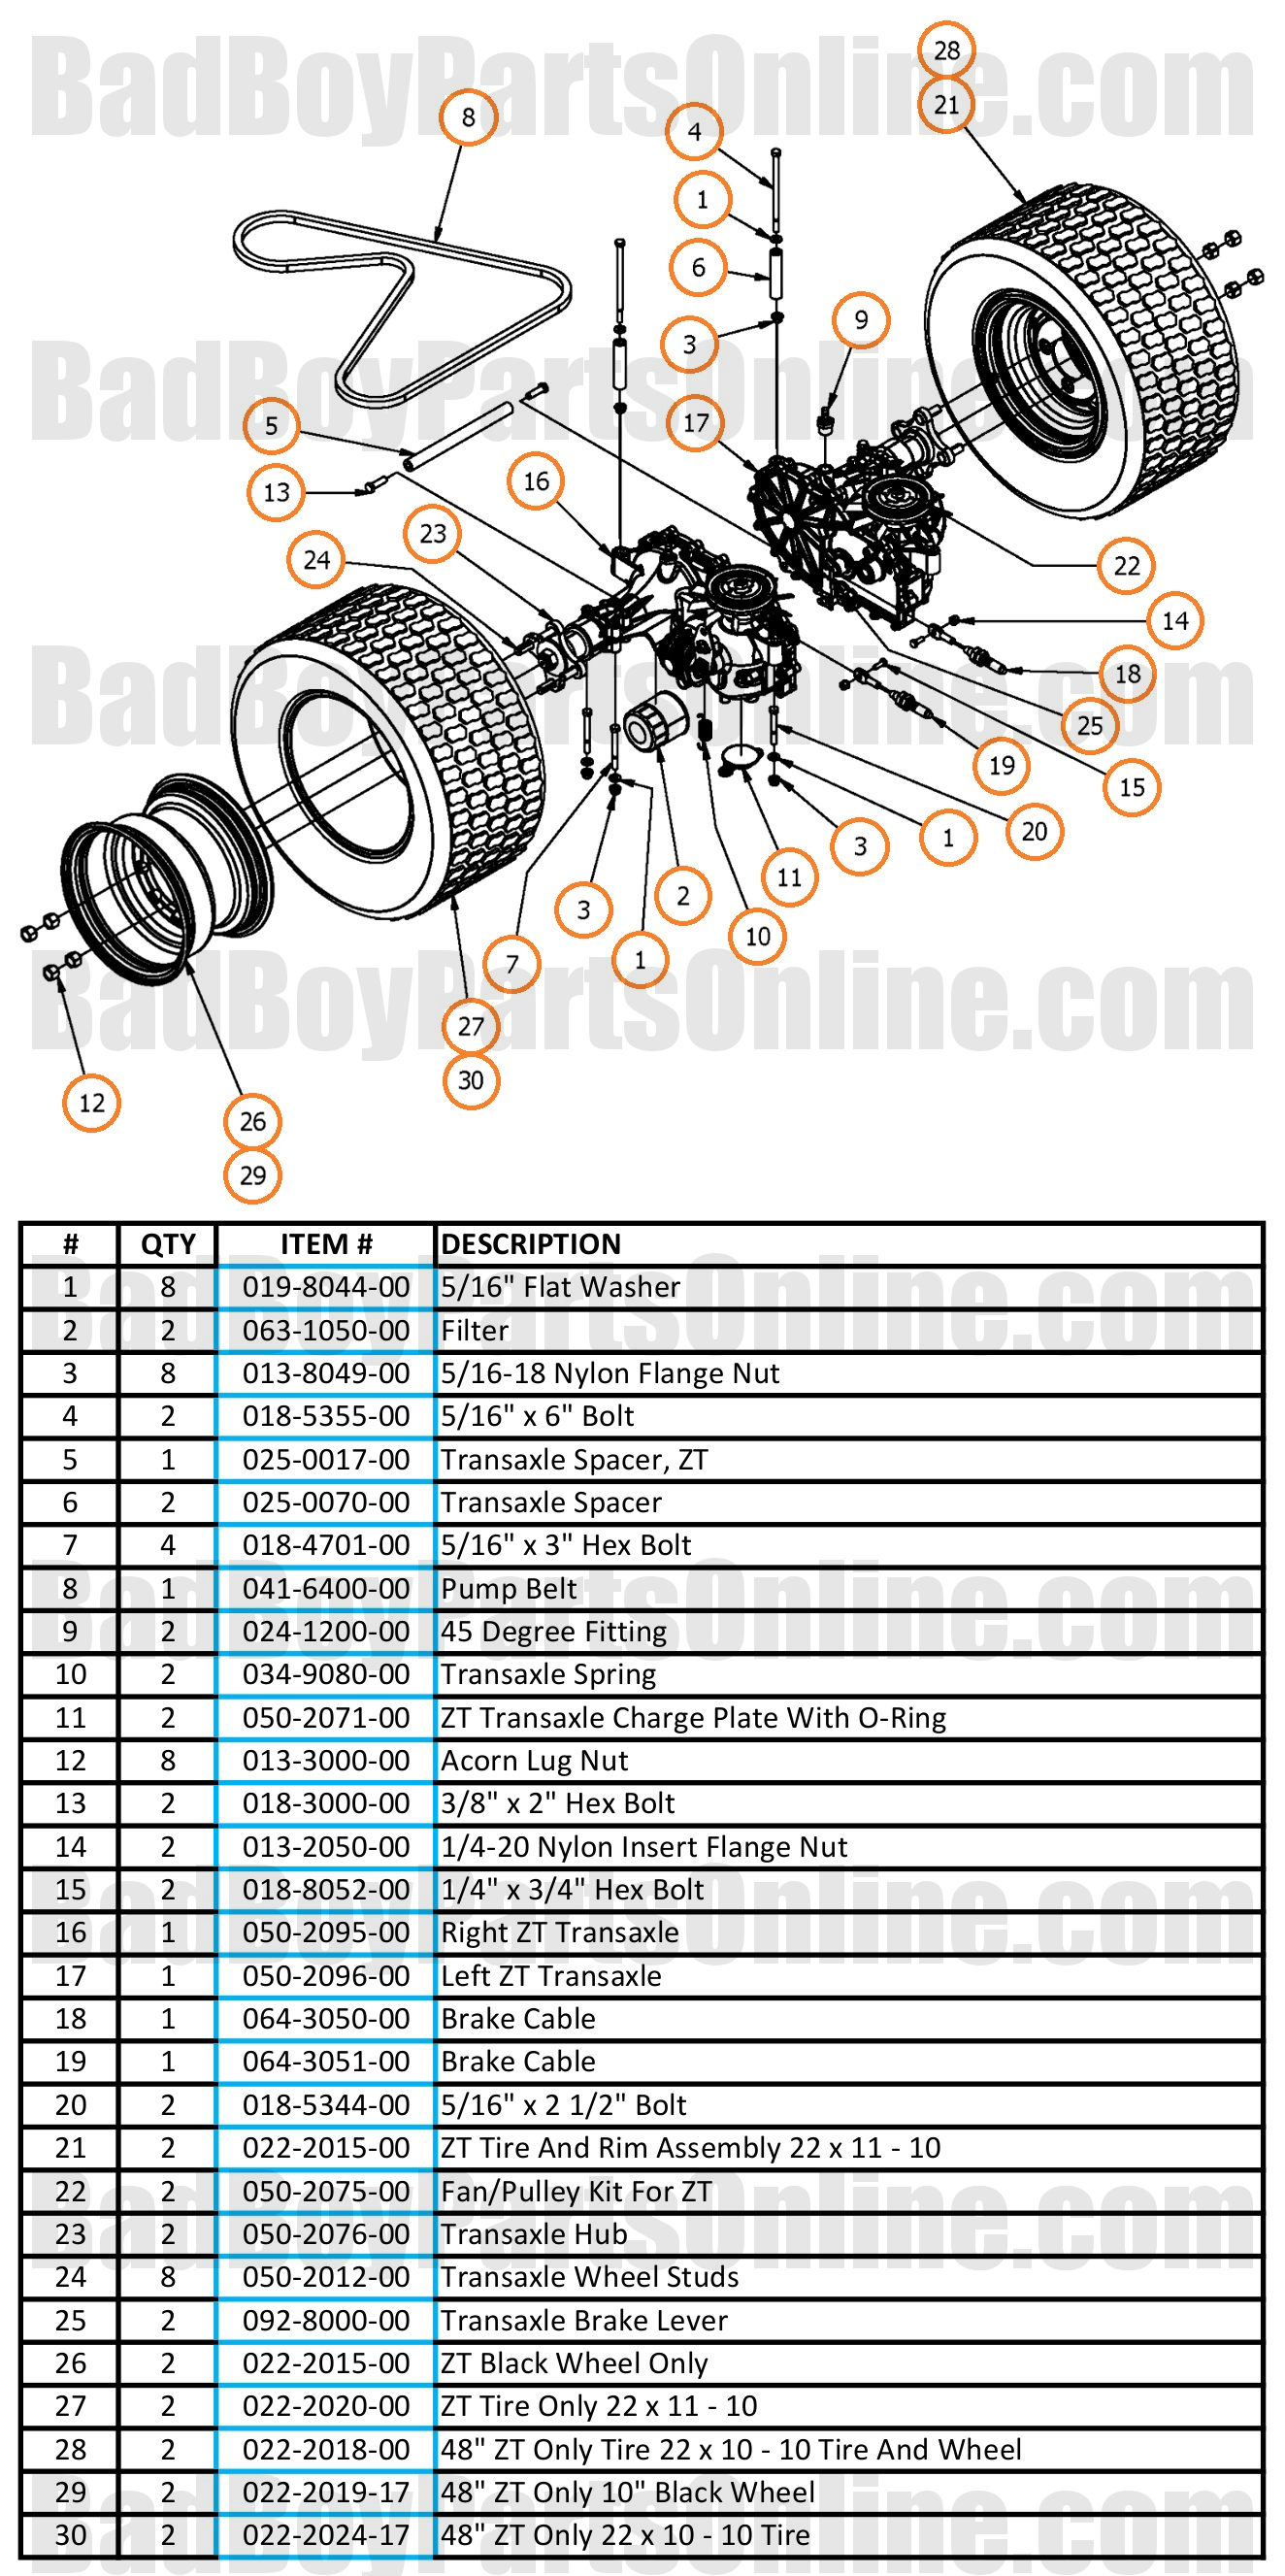 Bad Boy Parts Lookup 2013 Zt Elite Fuel Tank Assembly Manual Guide